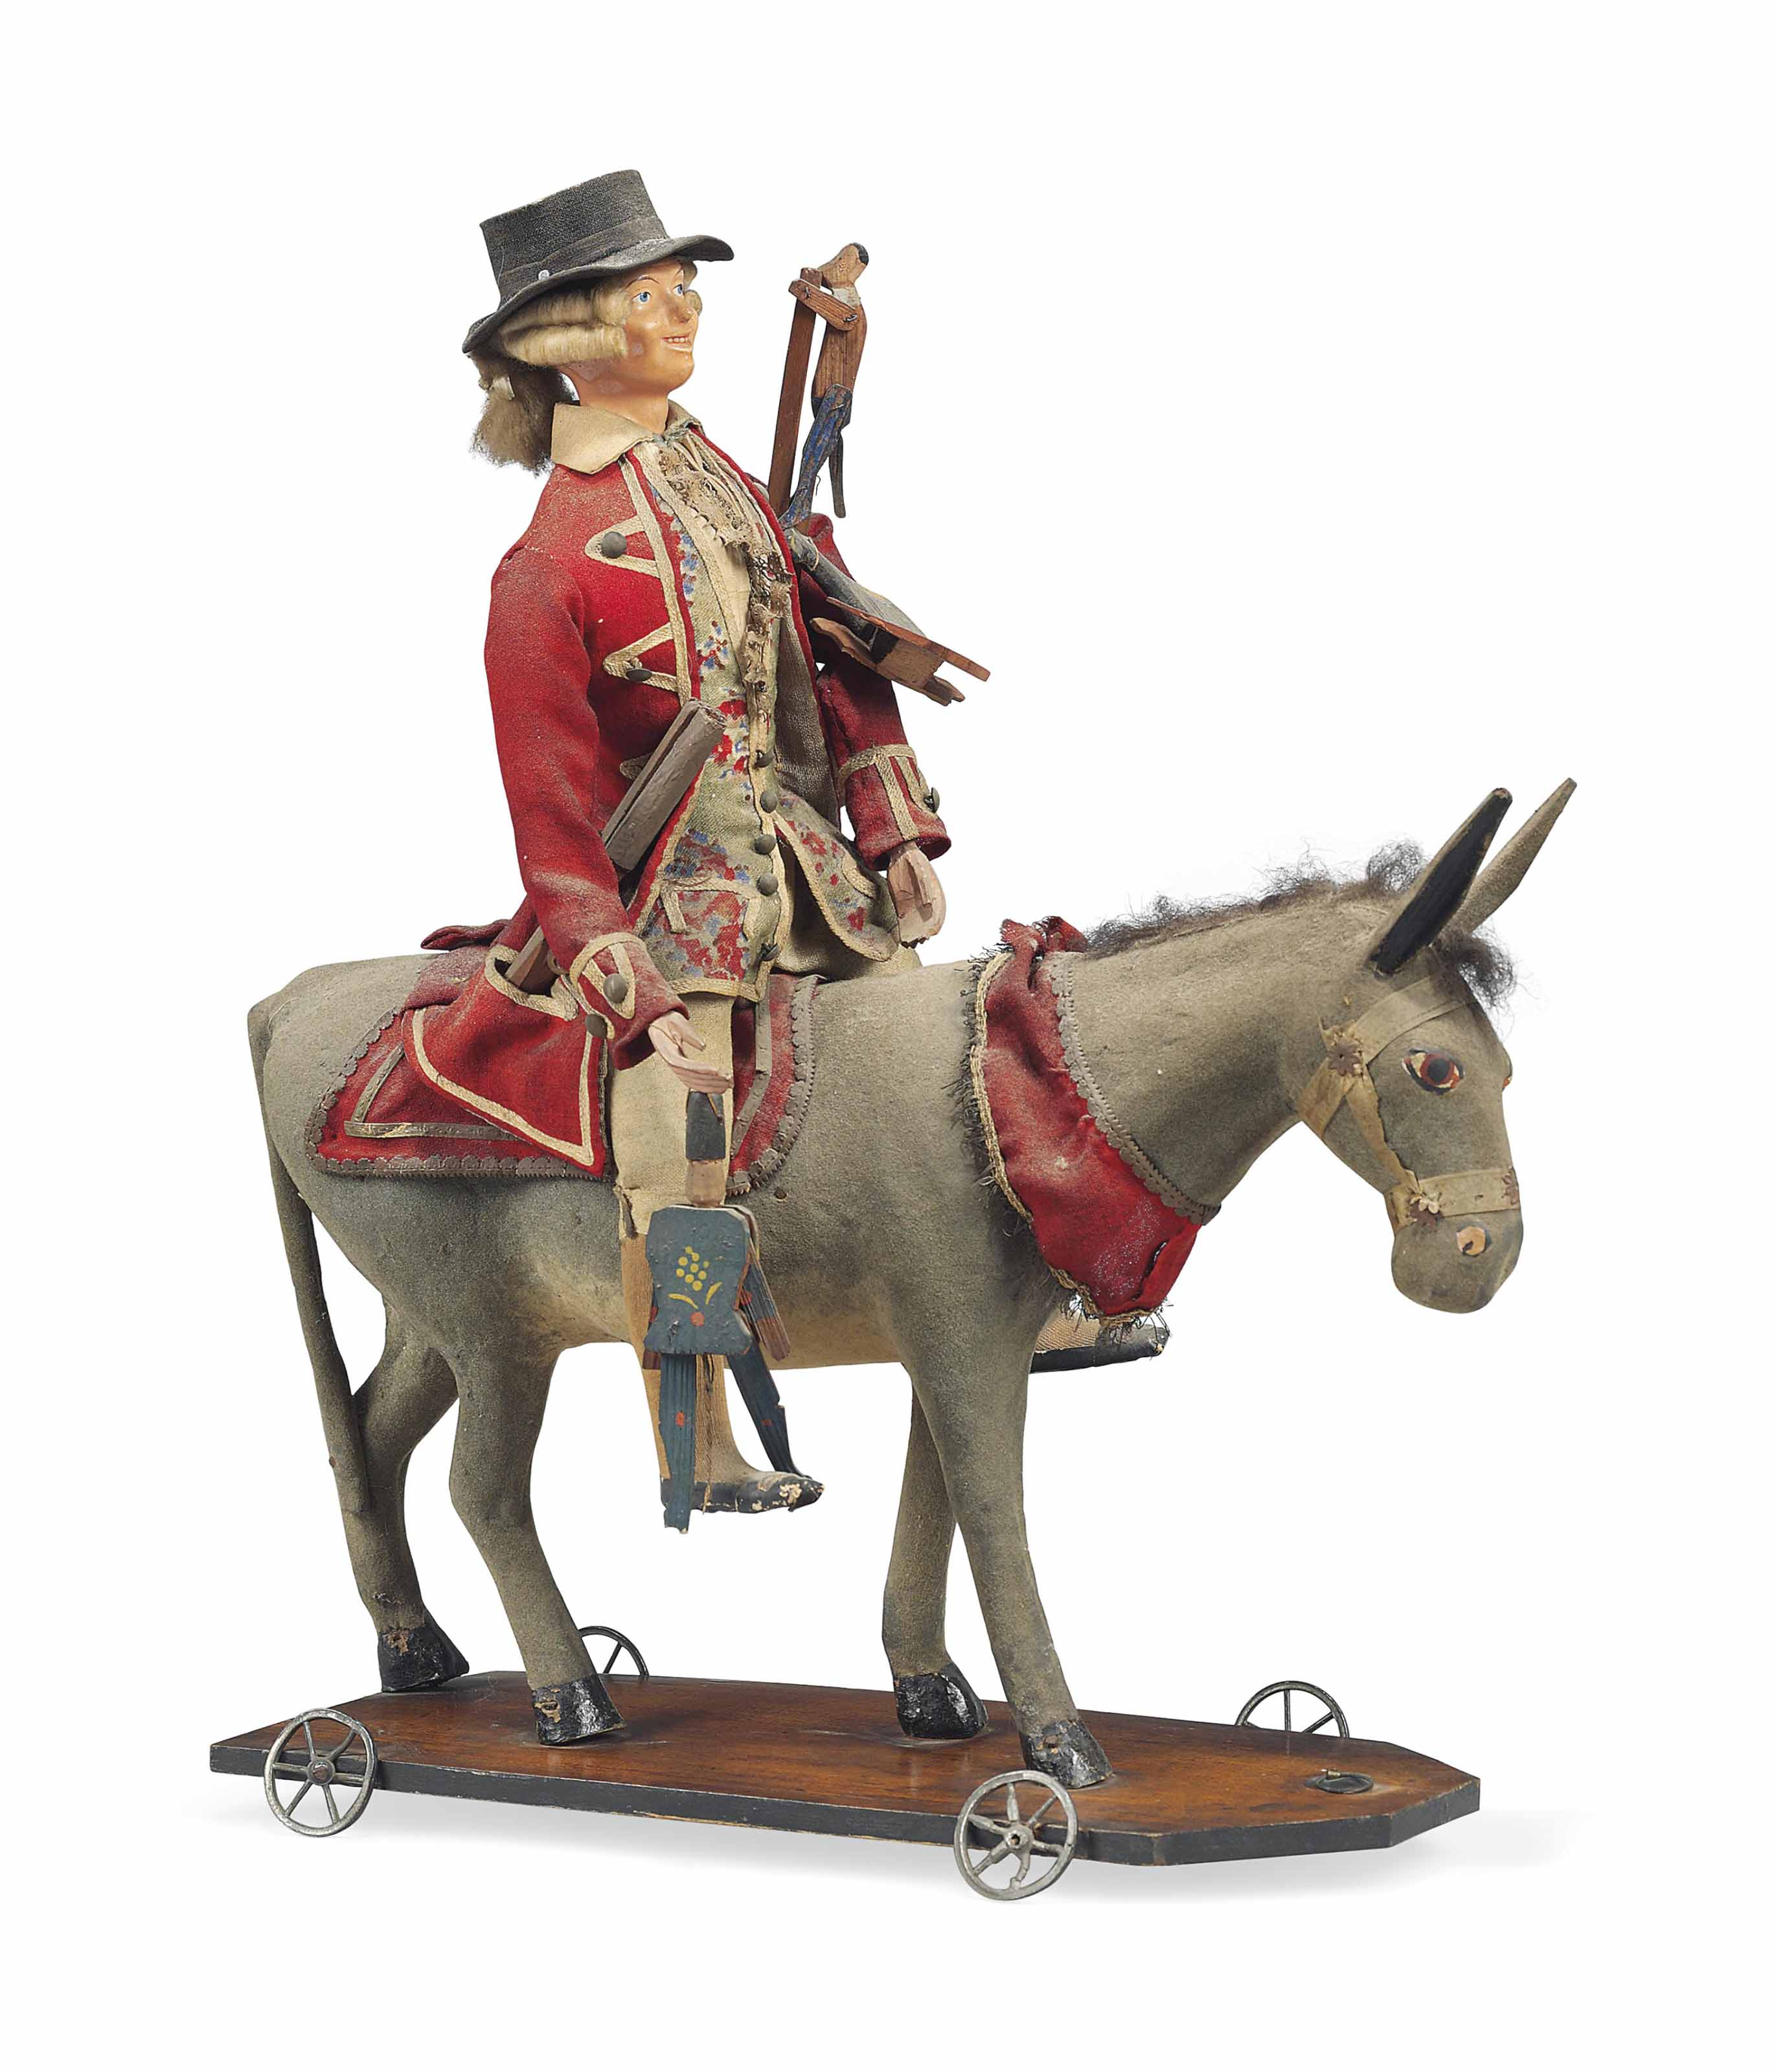 A PAPIER MACHE AND WOOD FIGURE OF A TOY-PEDLAR ON A DONKEY